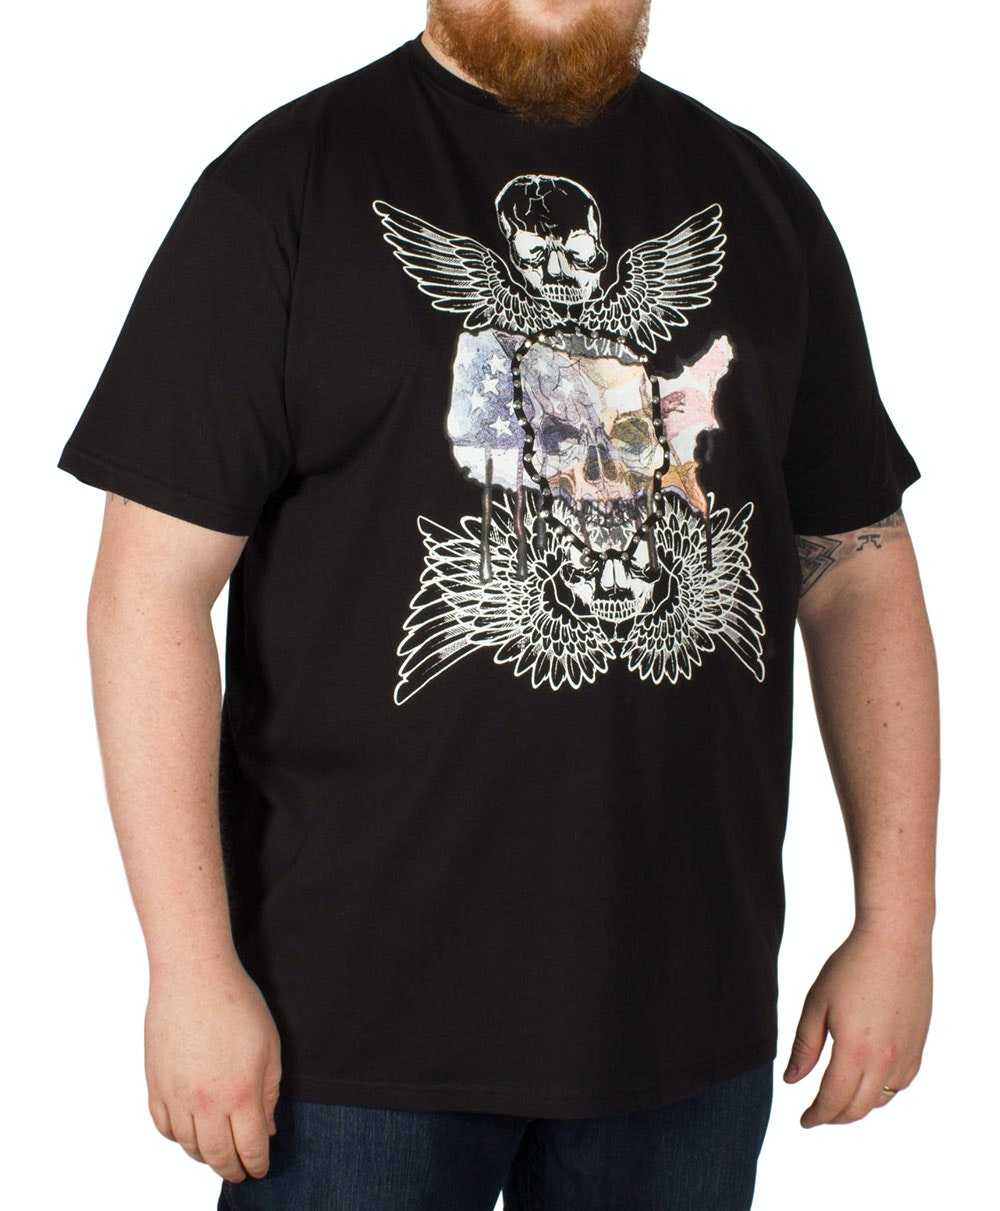 Metaphor Skull Wings Print T-Shirt